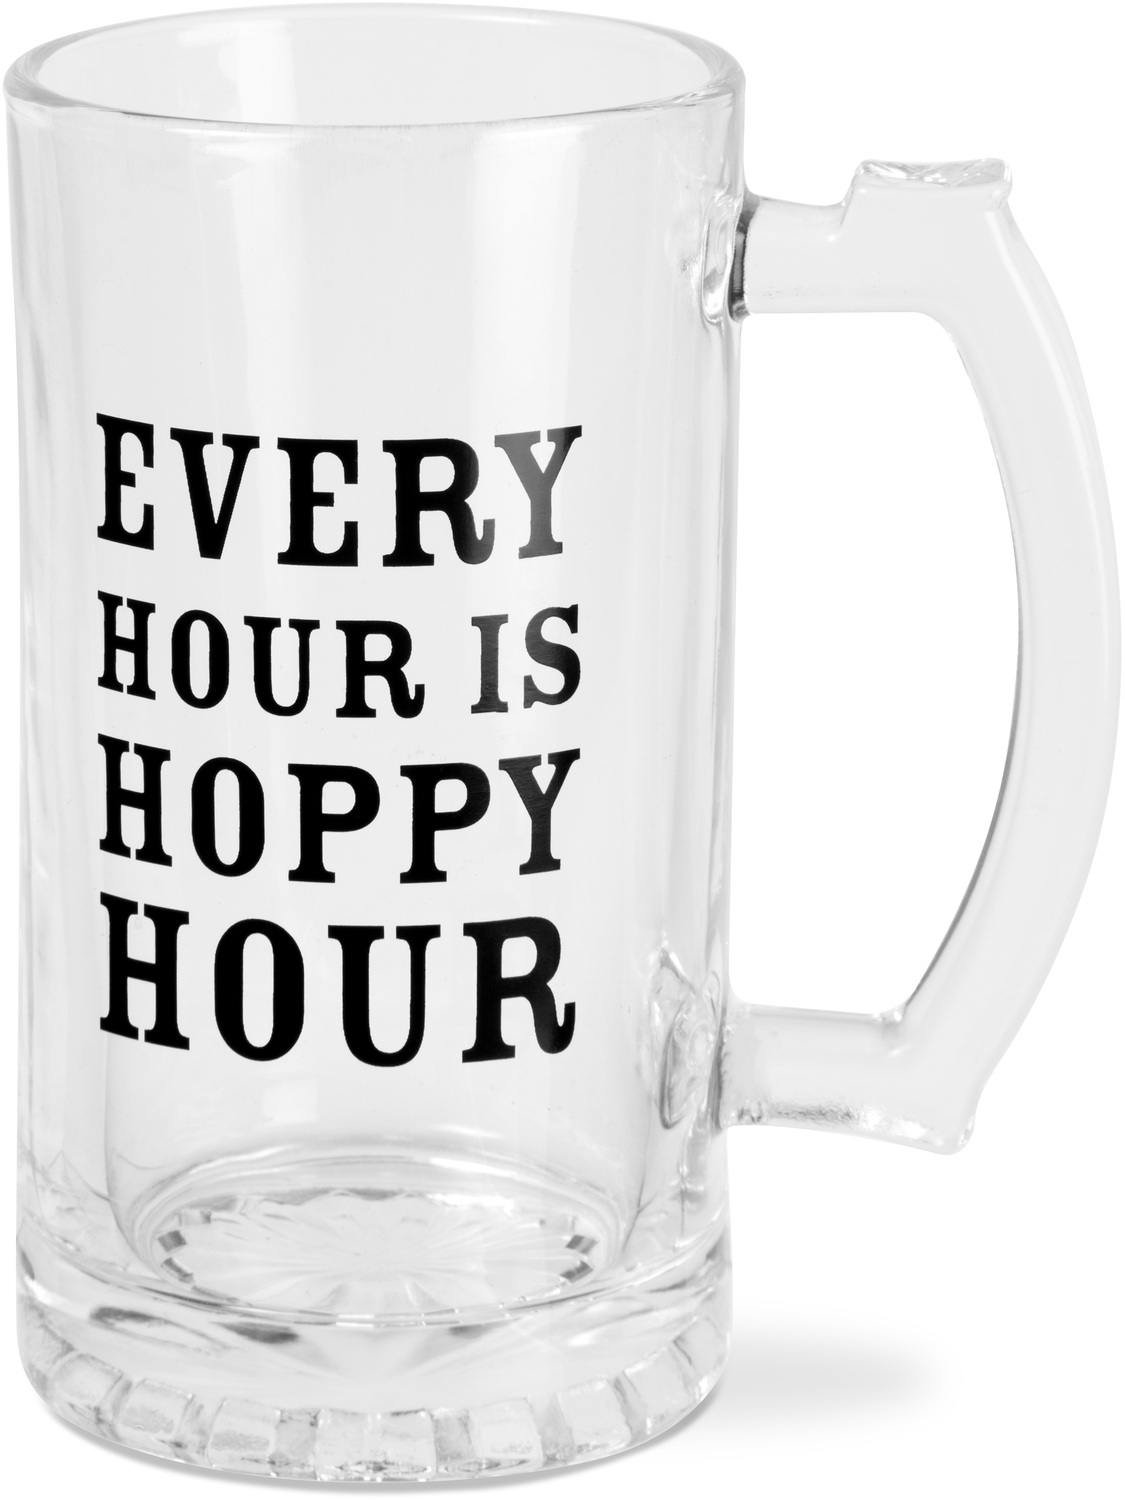 Hoppy Hour by Man Crafted - Hoppy Hour - 16 oz Beer Stein